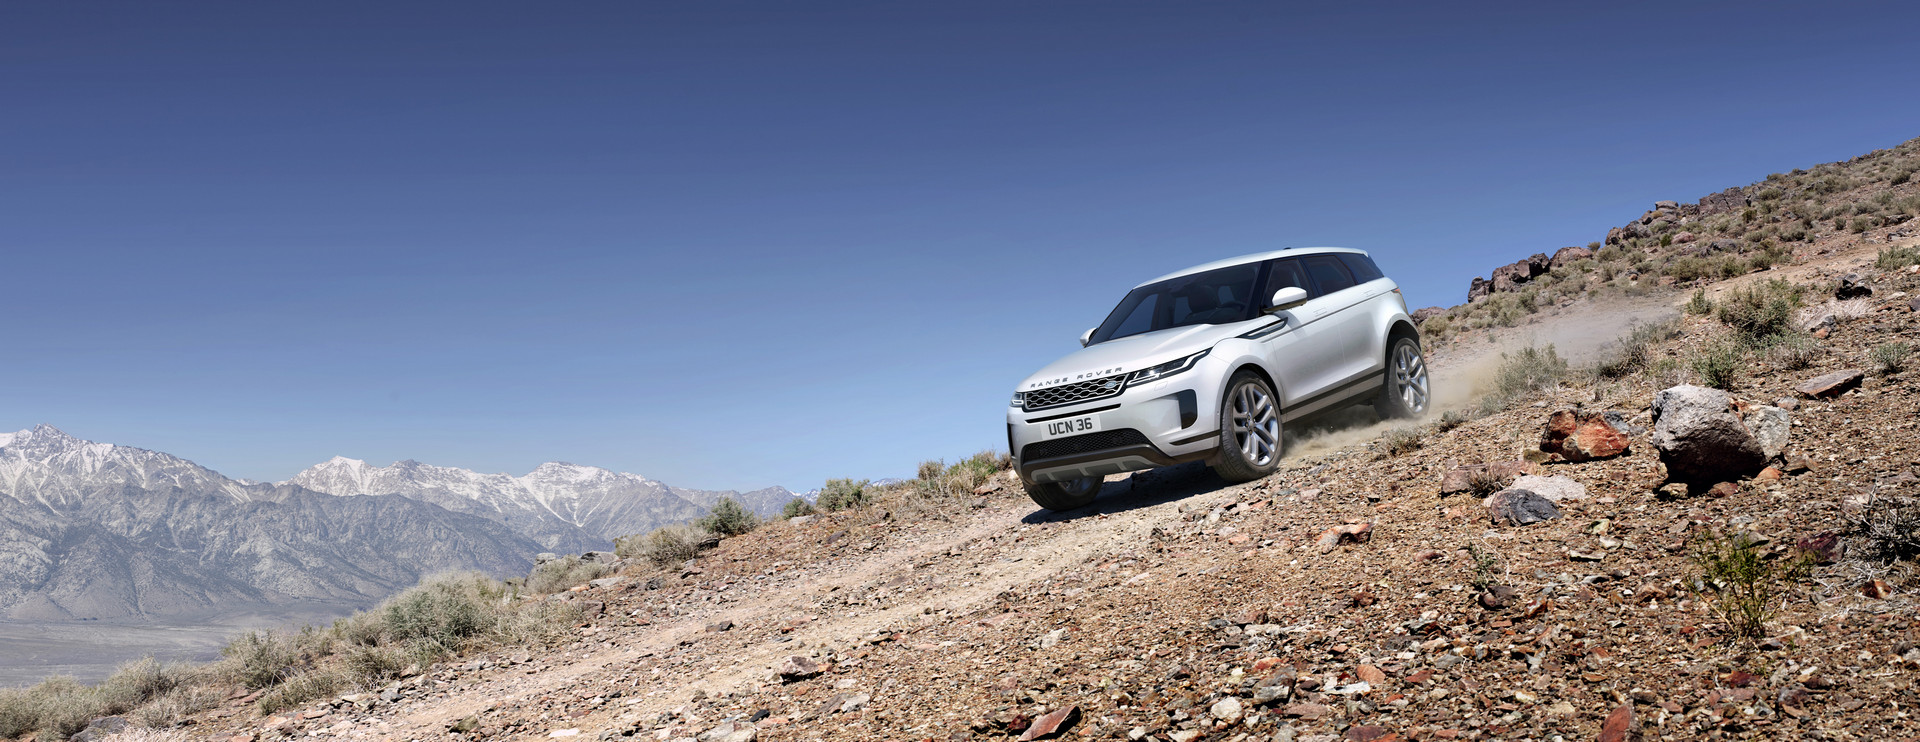 2019 Range Rover Evoque Off-road